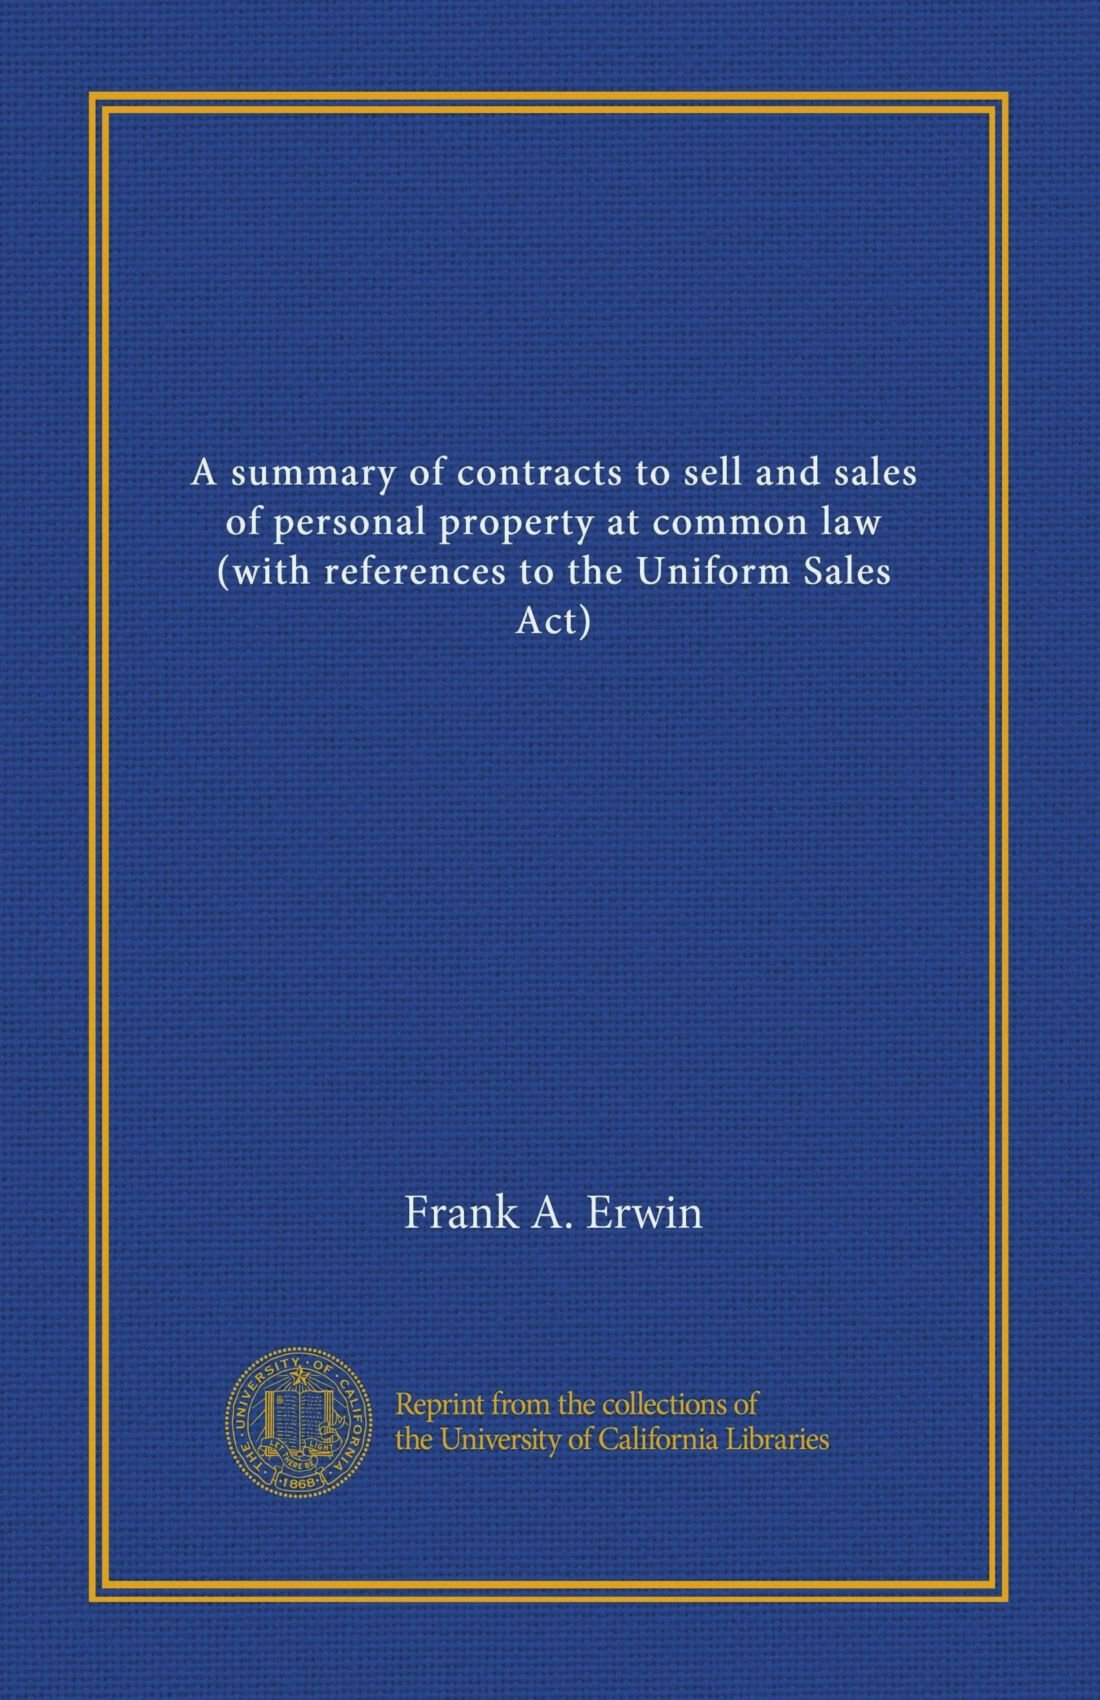 Download A summary of contracts to sell and sales of personal property at common law (with references to the Uniform Sales Act) ebook